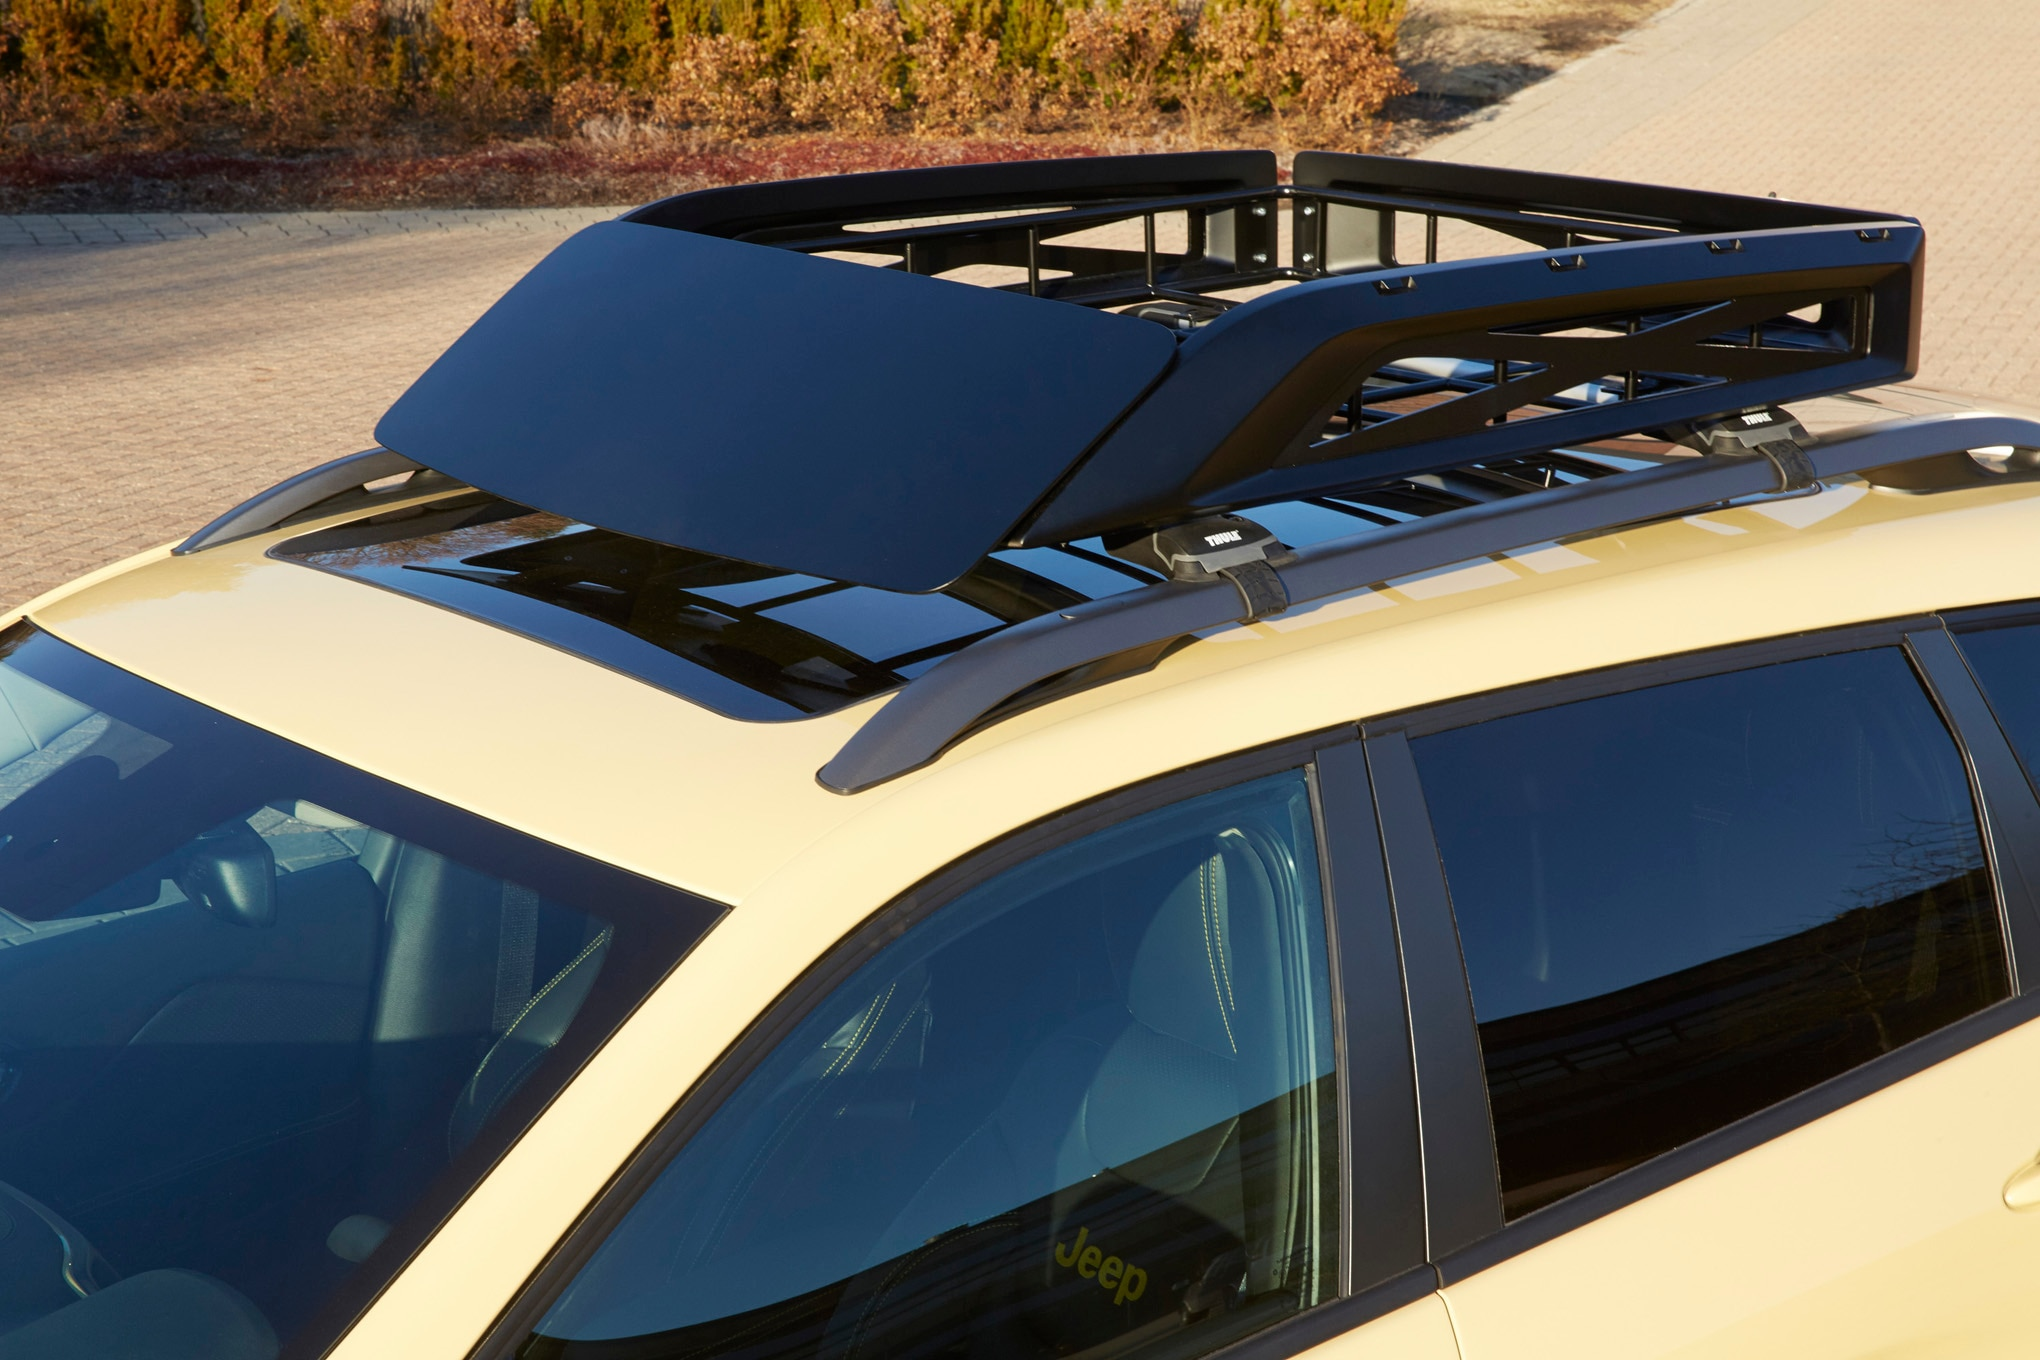 Jeep Cherokee Adventurer Concept roof rack